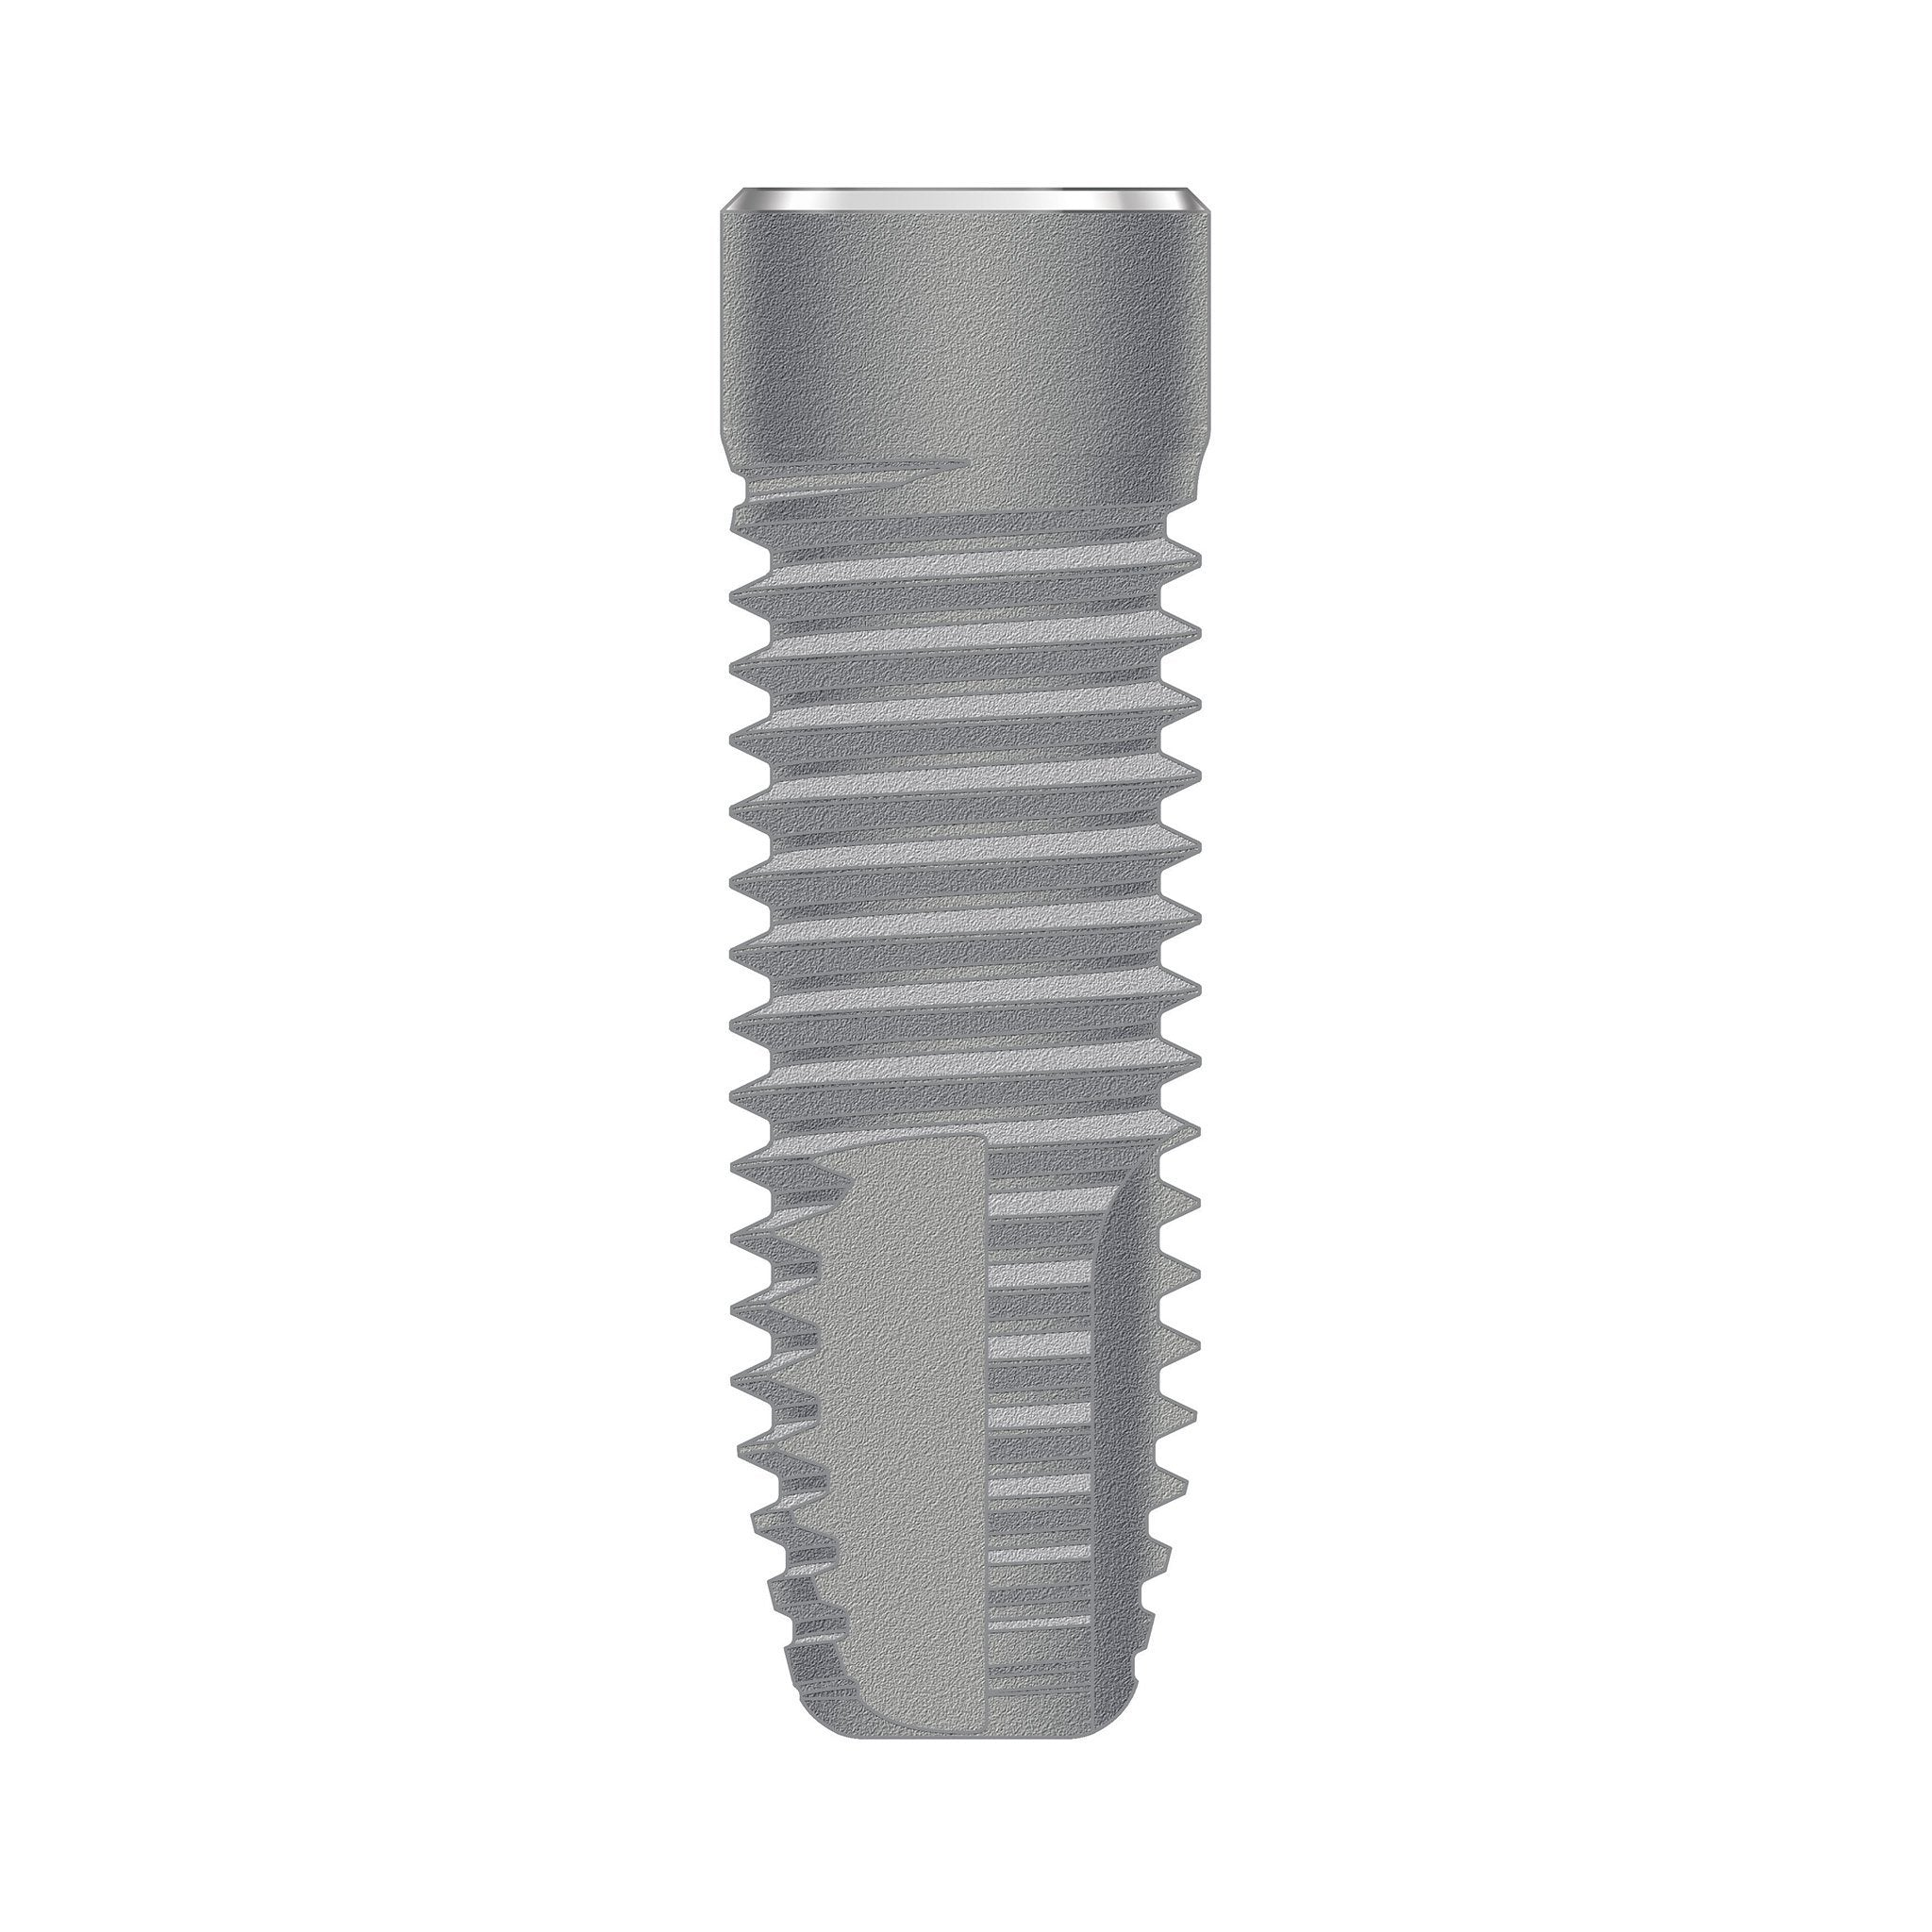 PrimaConnex® Straight Implant RD Ø 5.0 x 13mm | K2